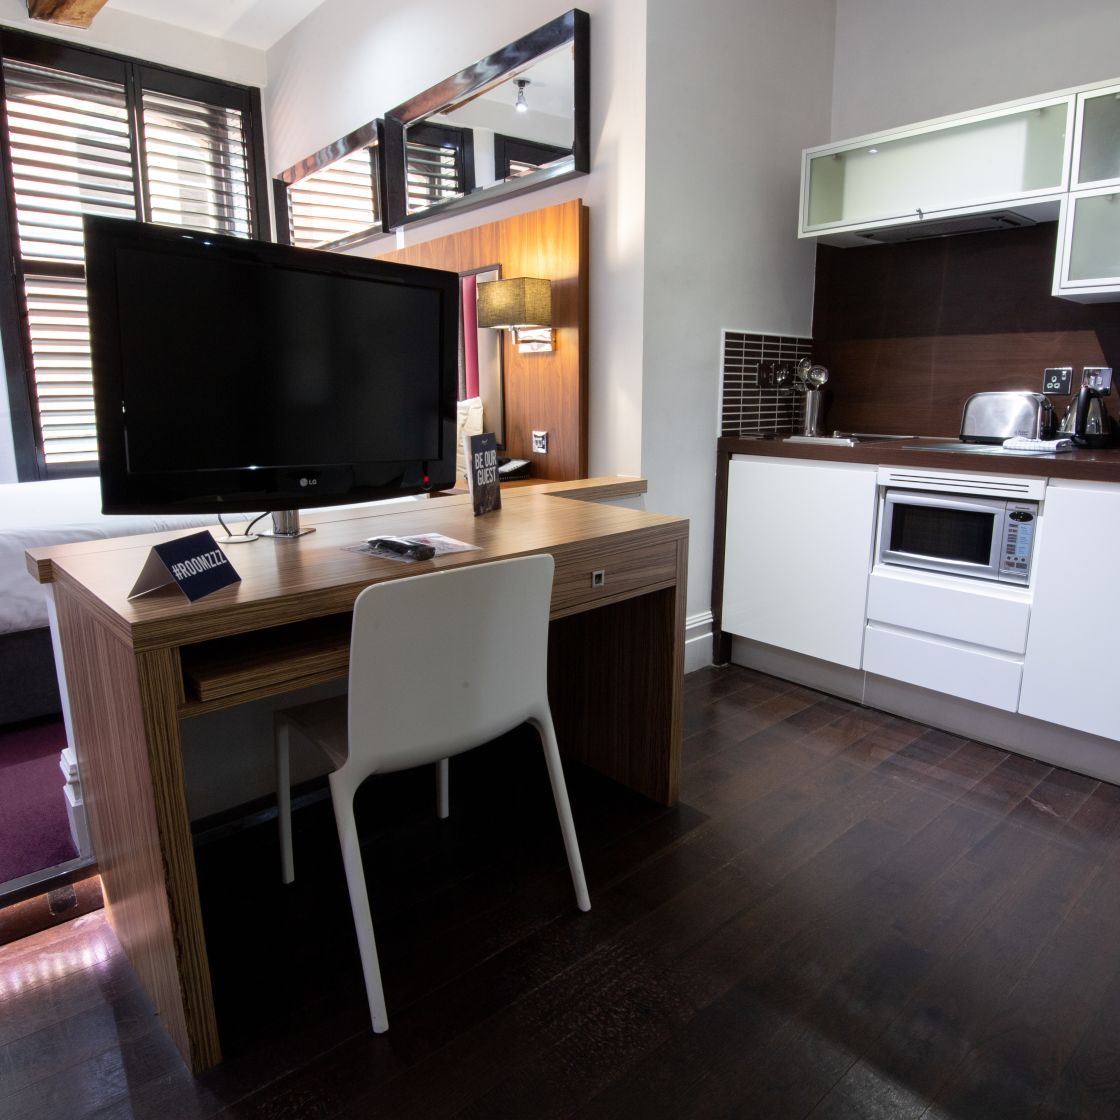 Grande Studio Student Apartment in Manchester. Fully Equipped Kitchen. Desk and TV. IconInc @ Roomzzz